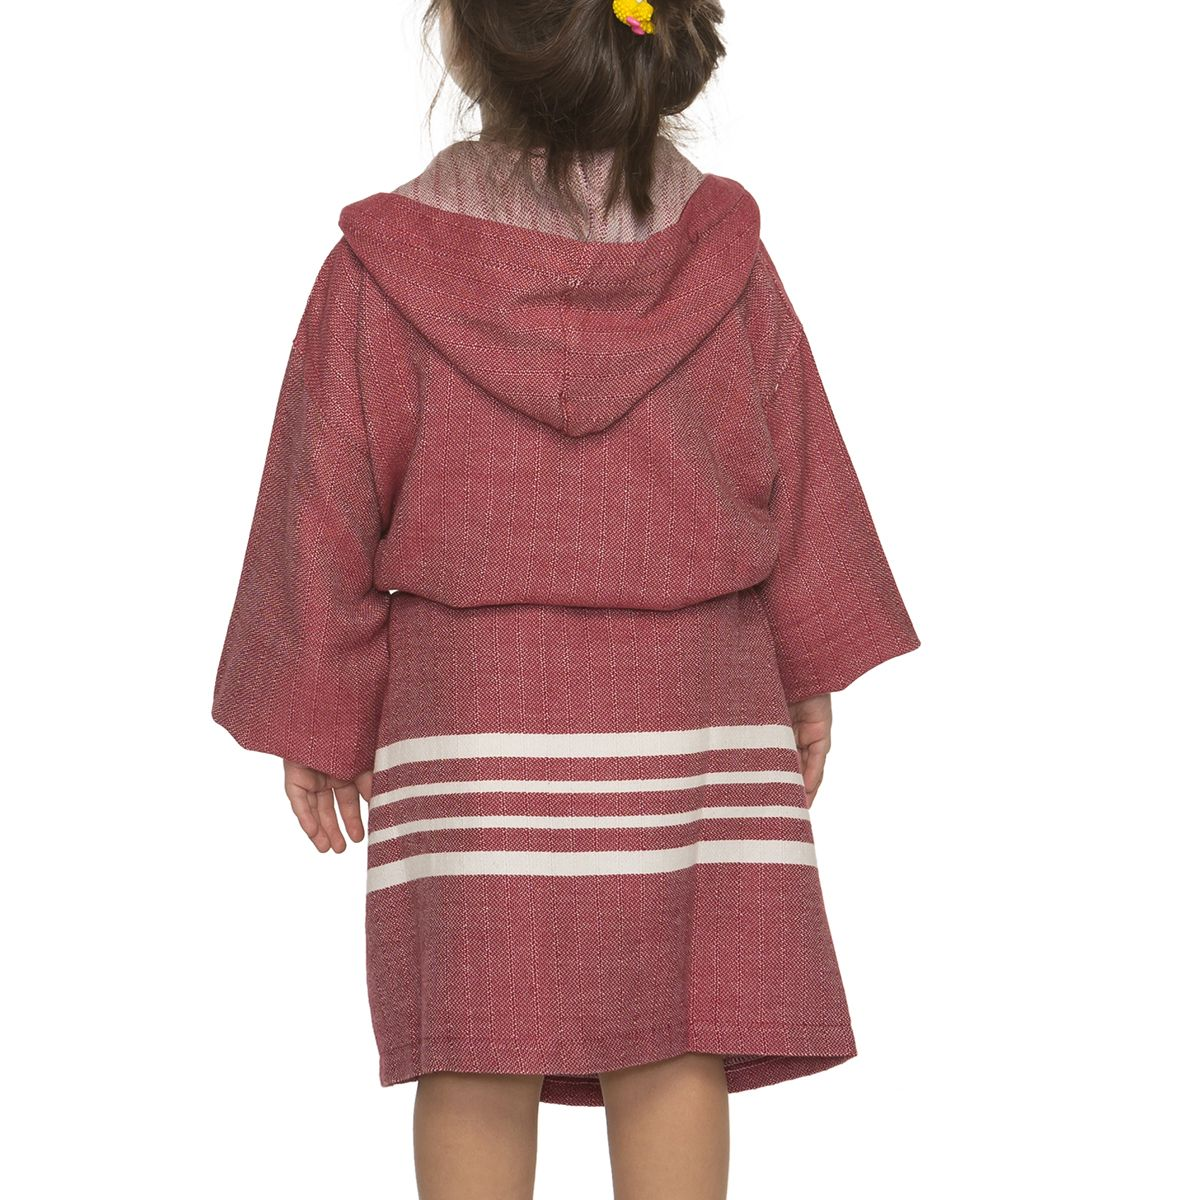 Bathrobe Kiddo with hood - Bordeaux